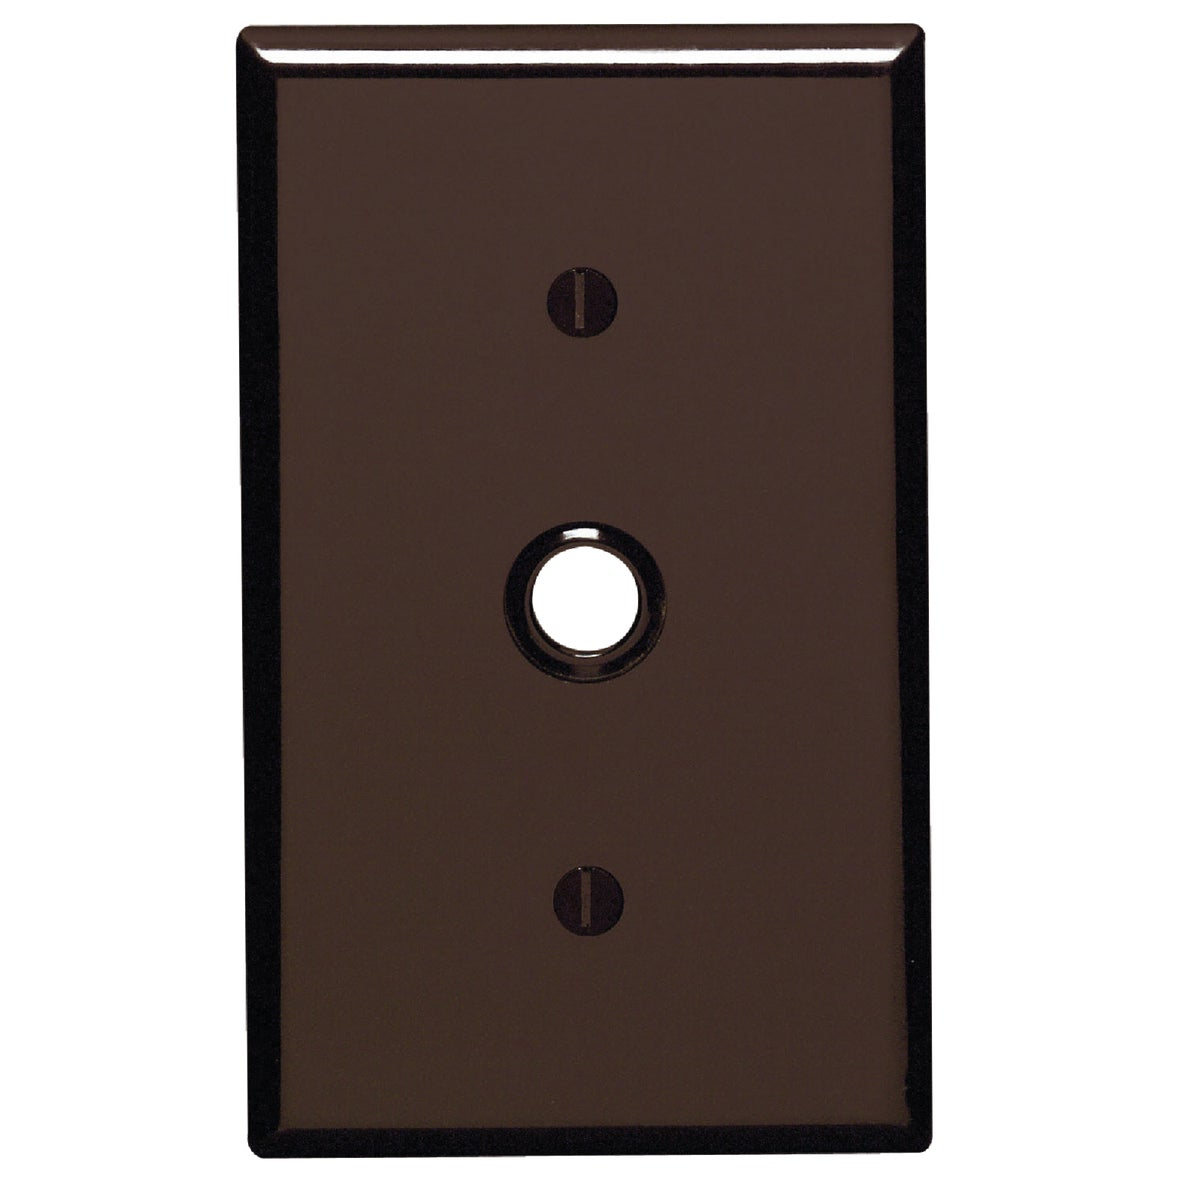 BRN PHONE WALL PLATE - 85018 by Leviton Mfg Co